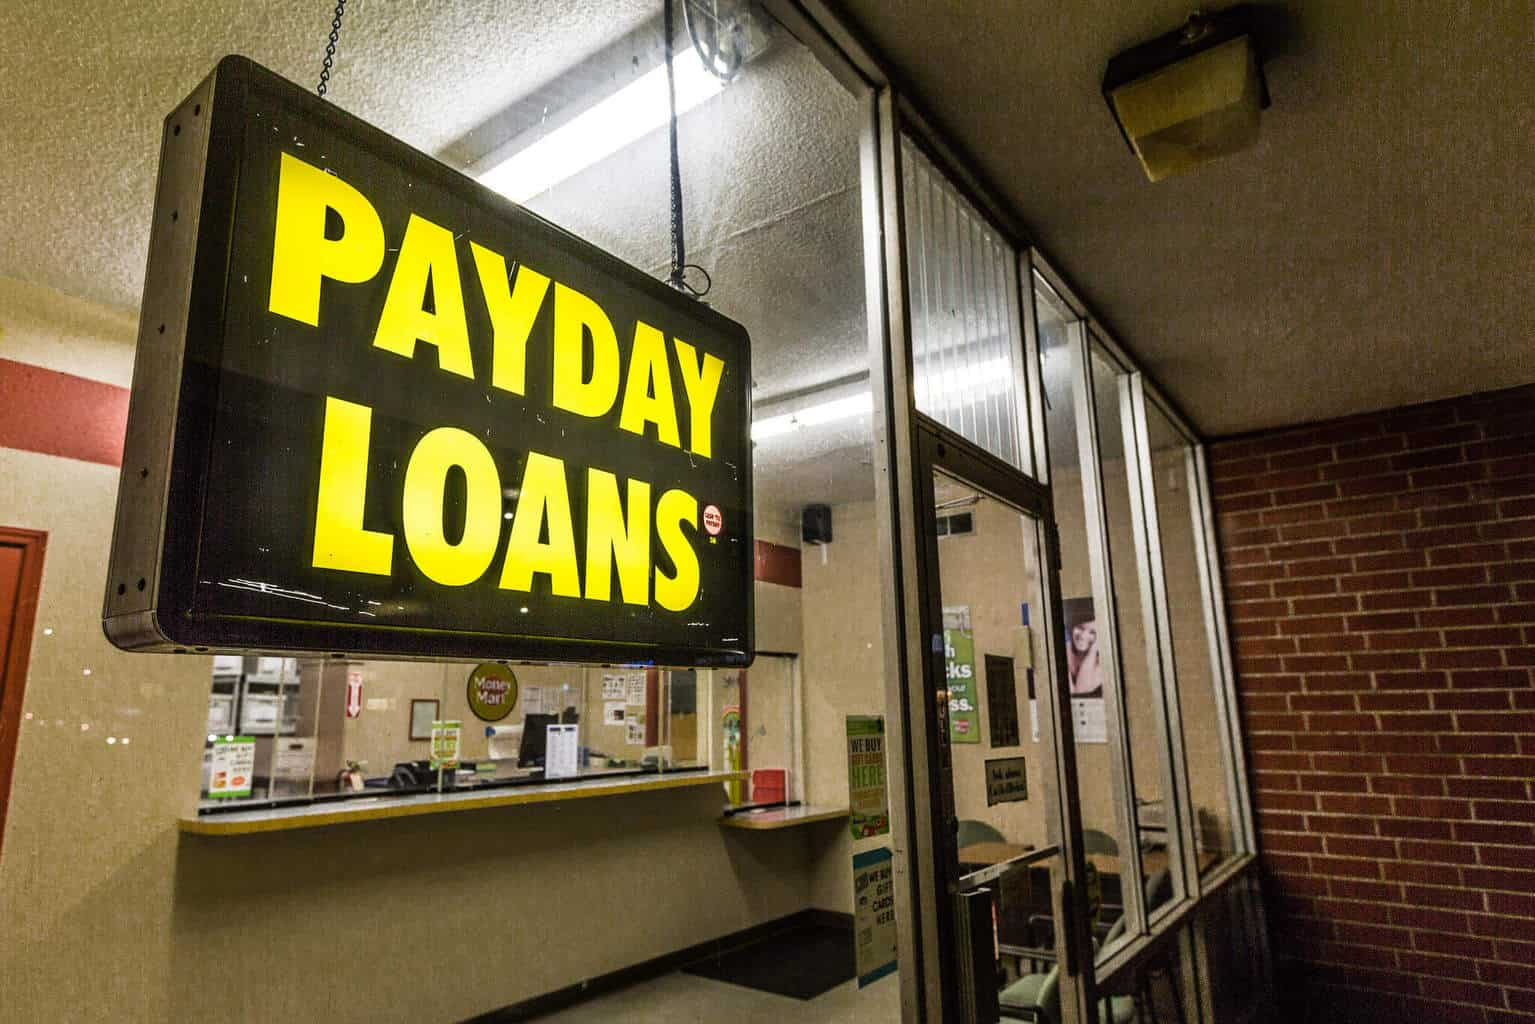 Payday Loans storefront - payday loans